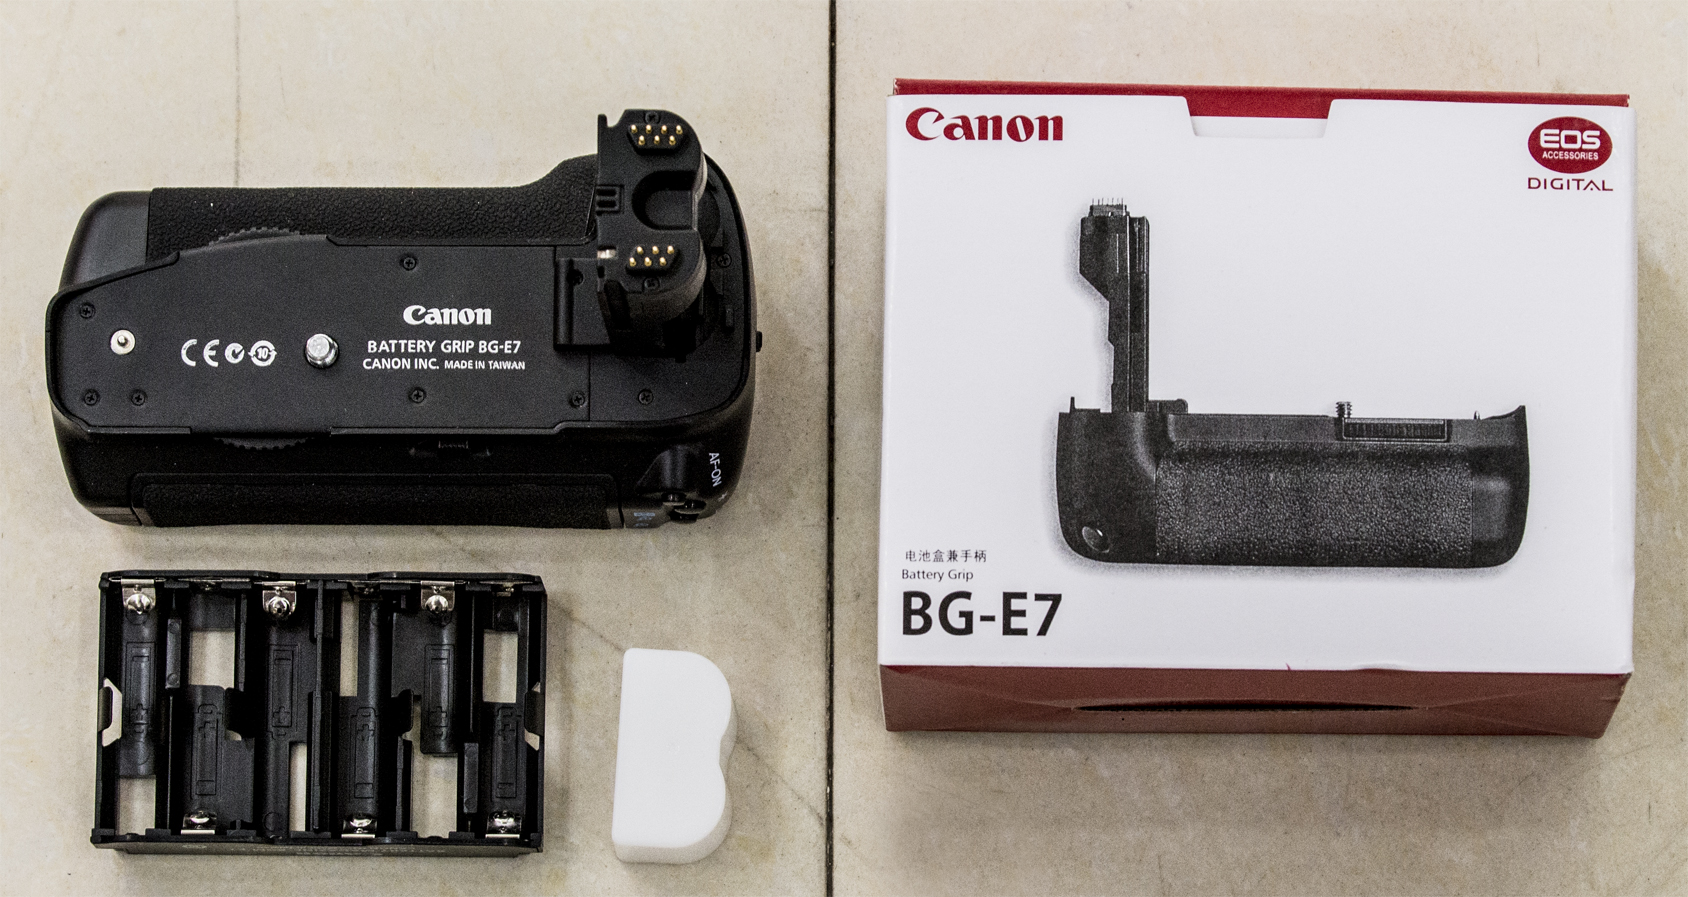 Battery Grip BG-E7 for Canon 7D